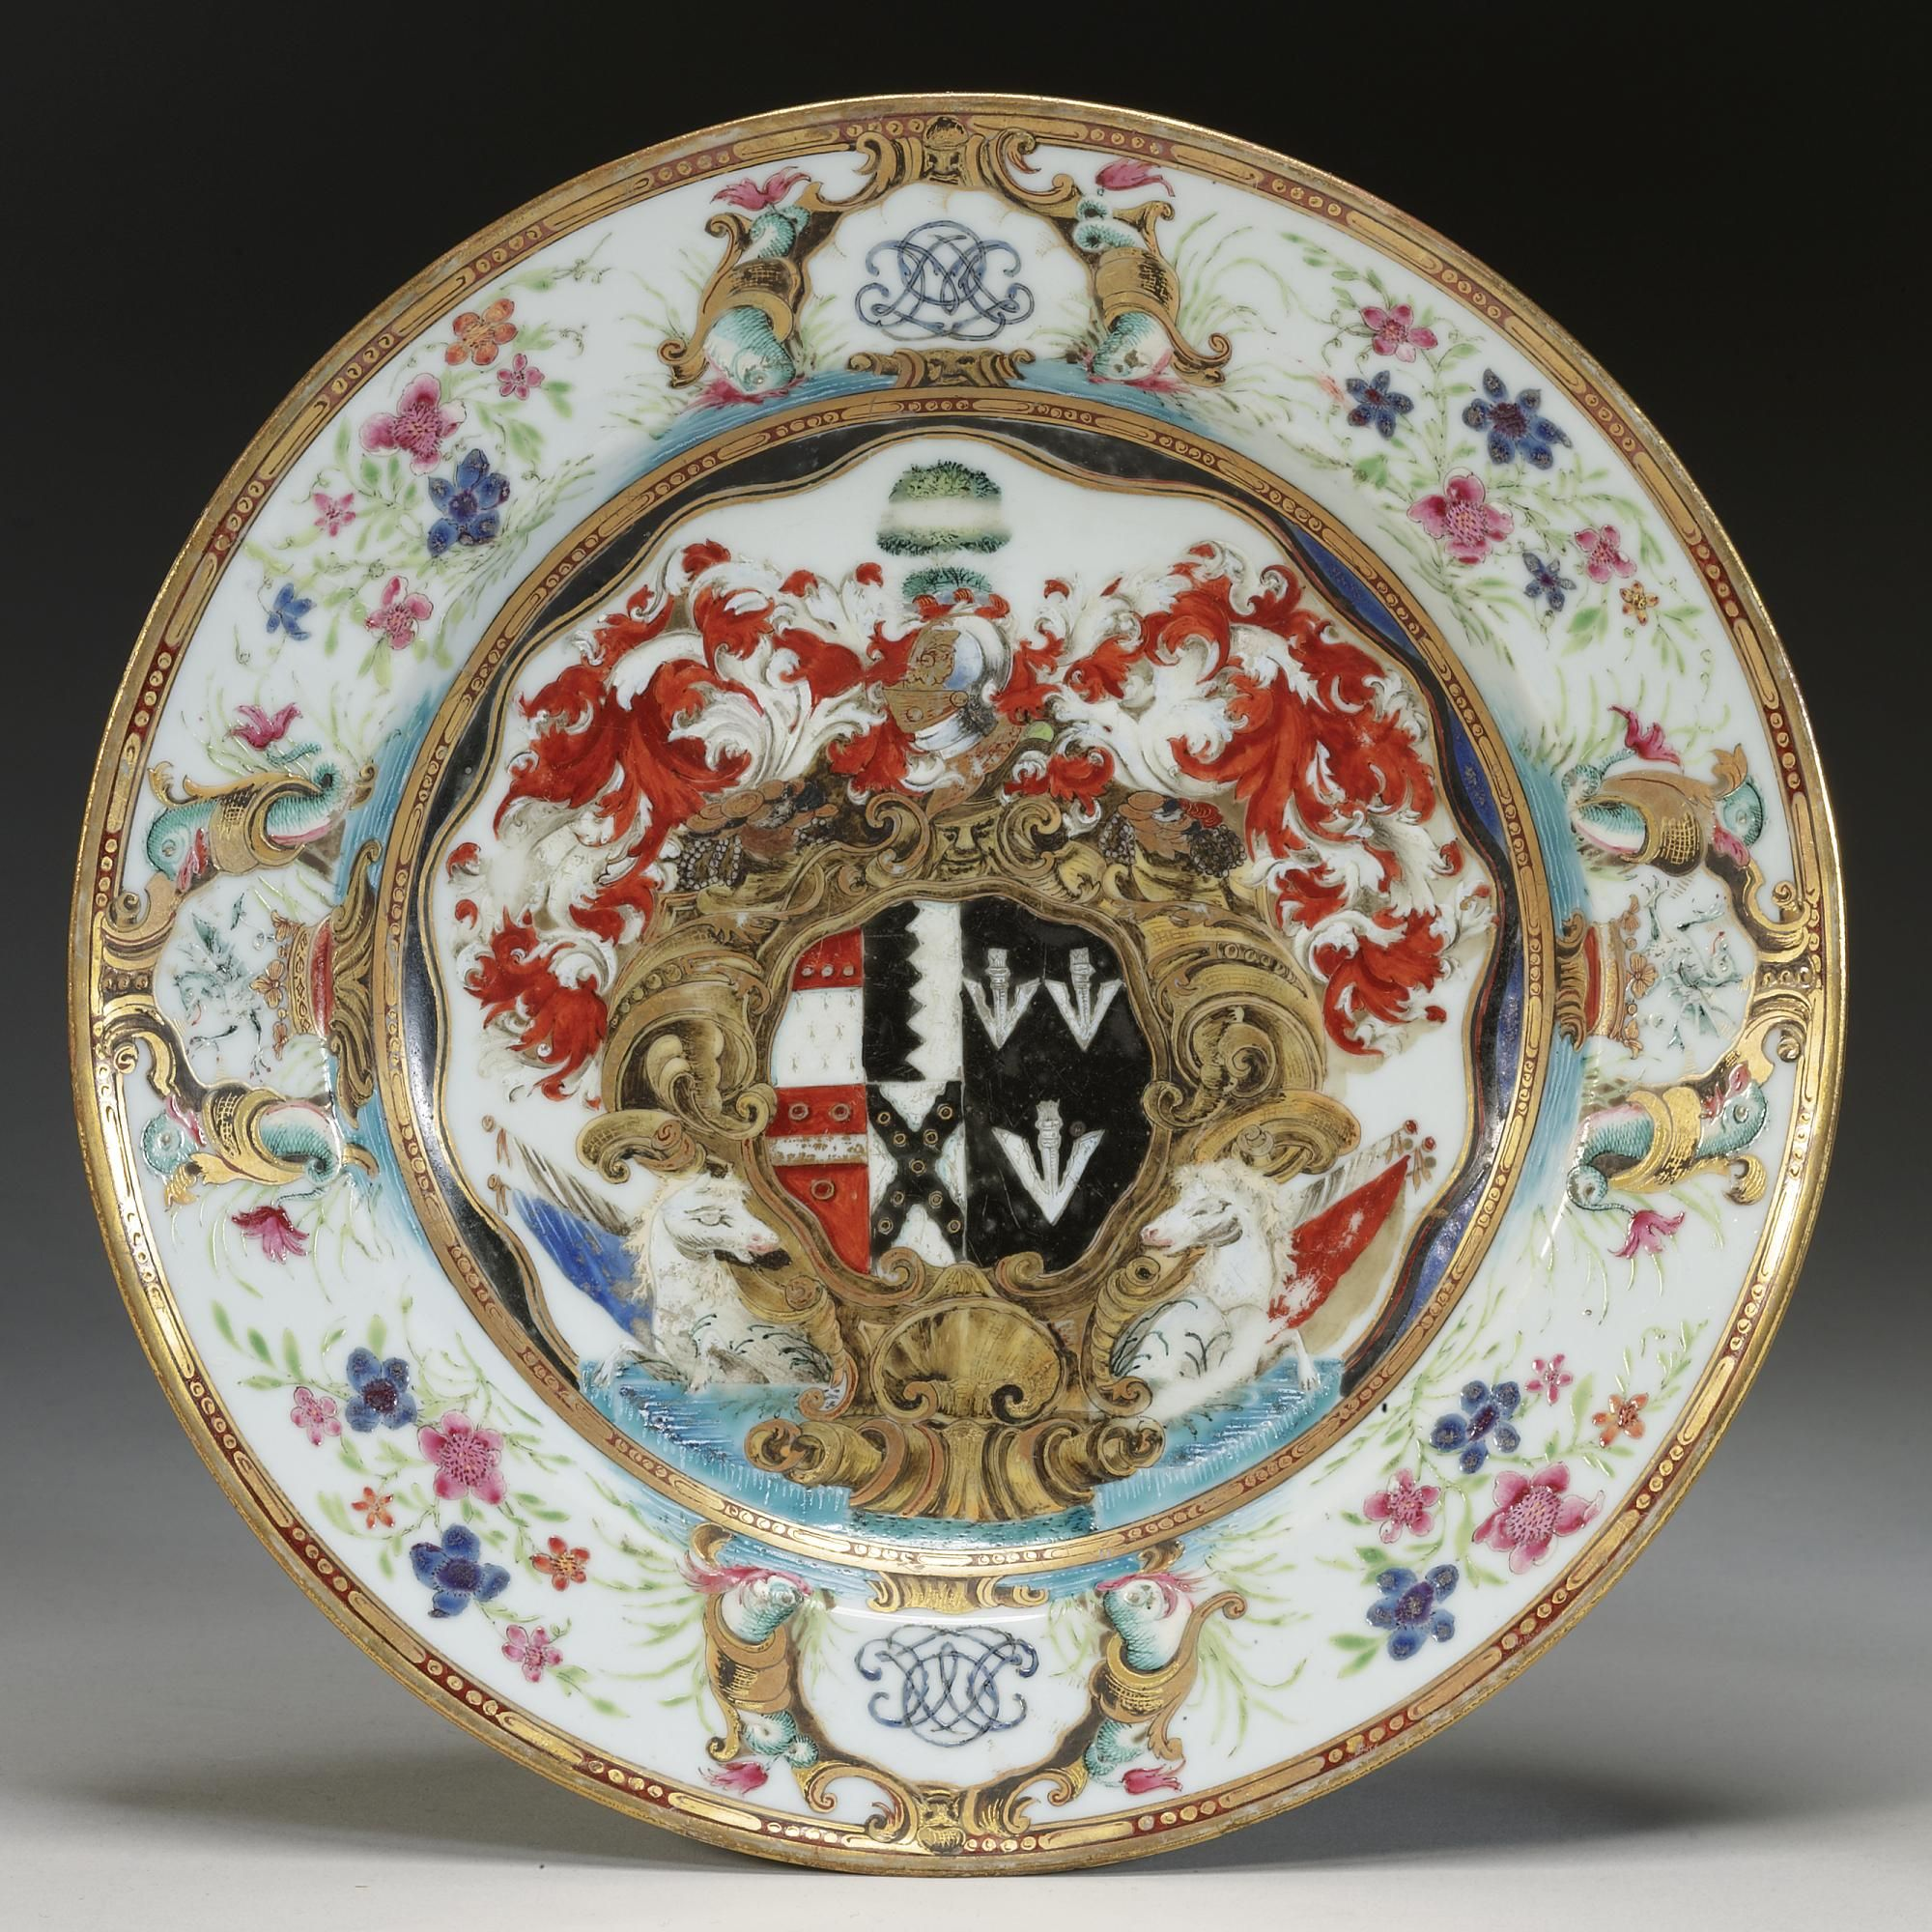 A Chinese Export Armorial Plate, Circa 1743, with the arms of Okeover quarterly impaling Nichol. diameter 9 in., 22.9 cm